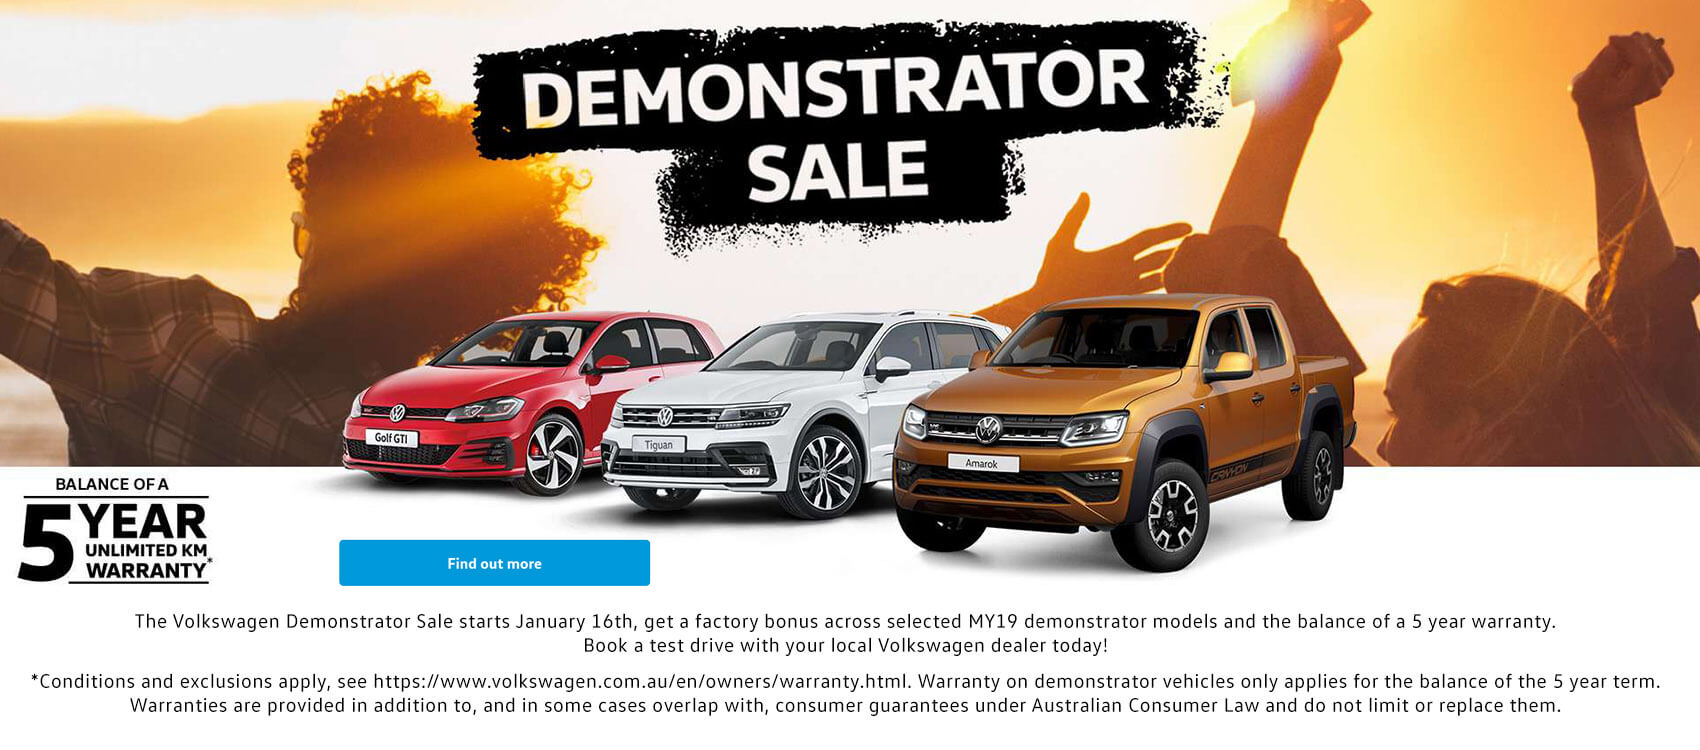 The Volkswagen Demonstrator Sale starts January 16th, get a factory bonus across selected MY19 demonstrator models and the balance of a 5 year warranty. Book a test drive with Westco Volkswagen